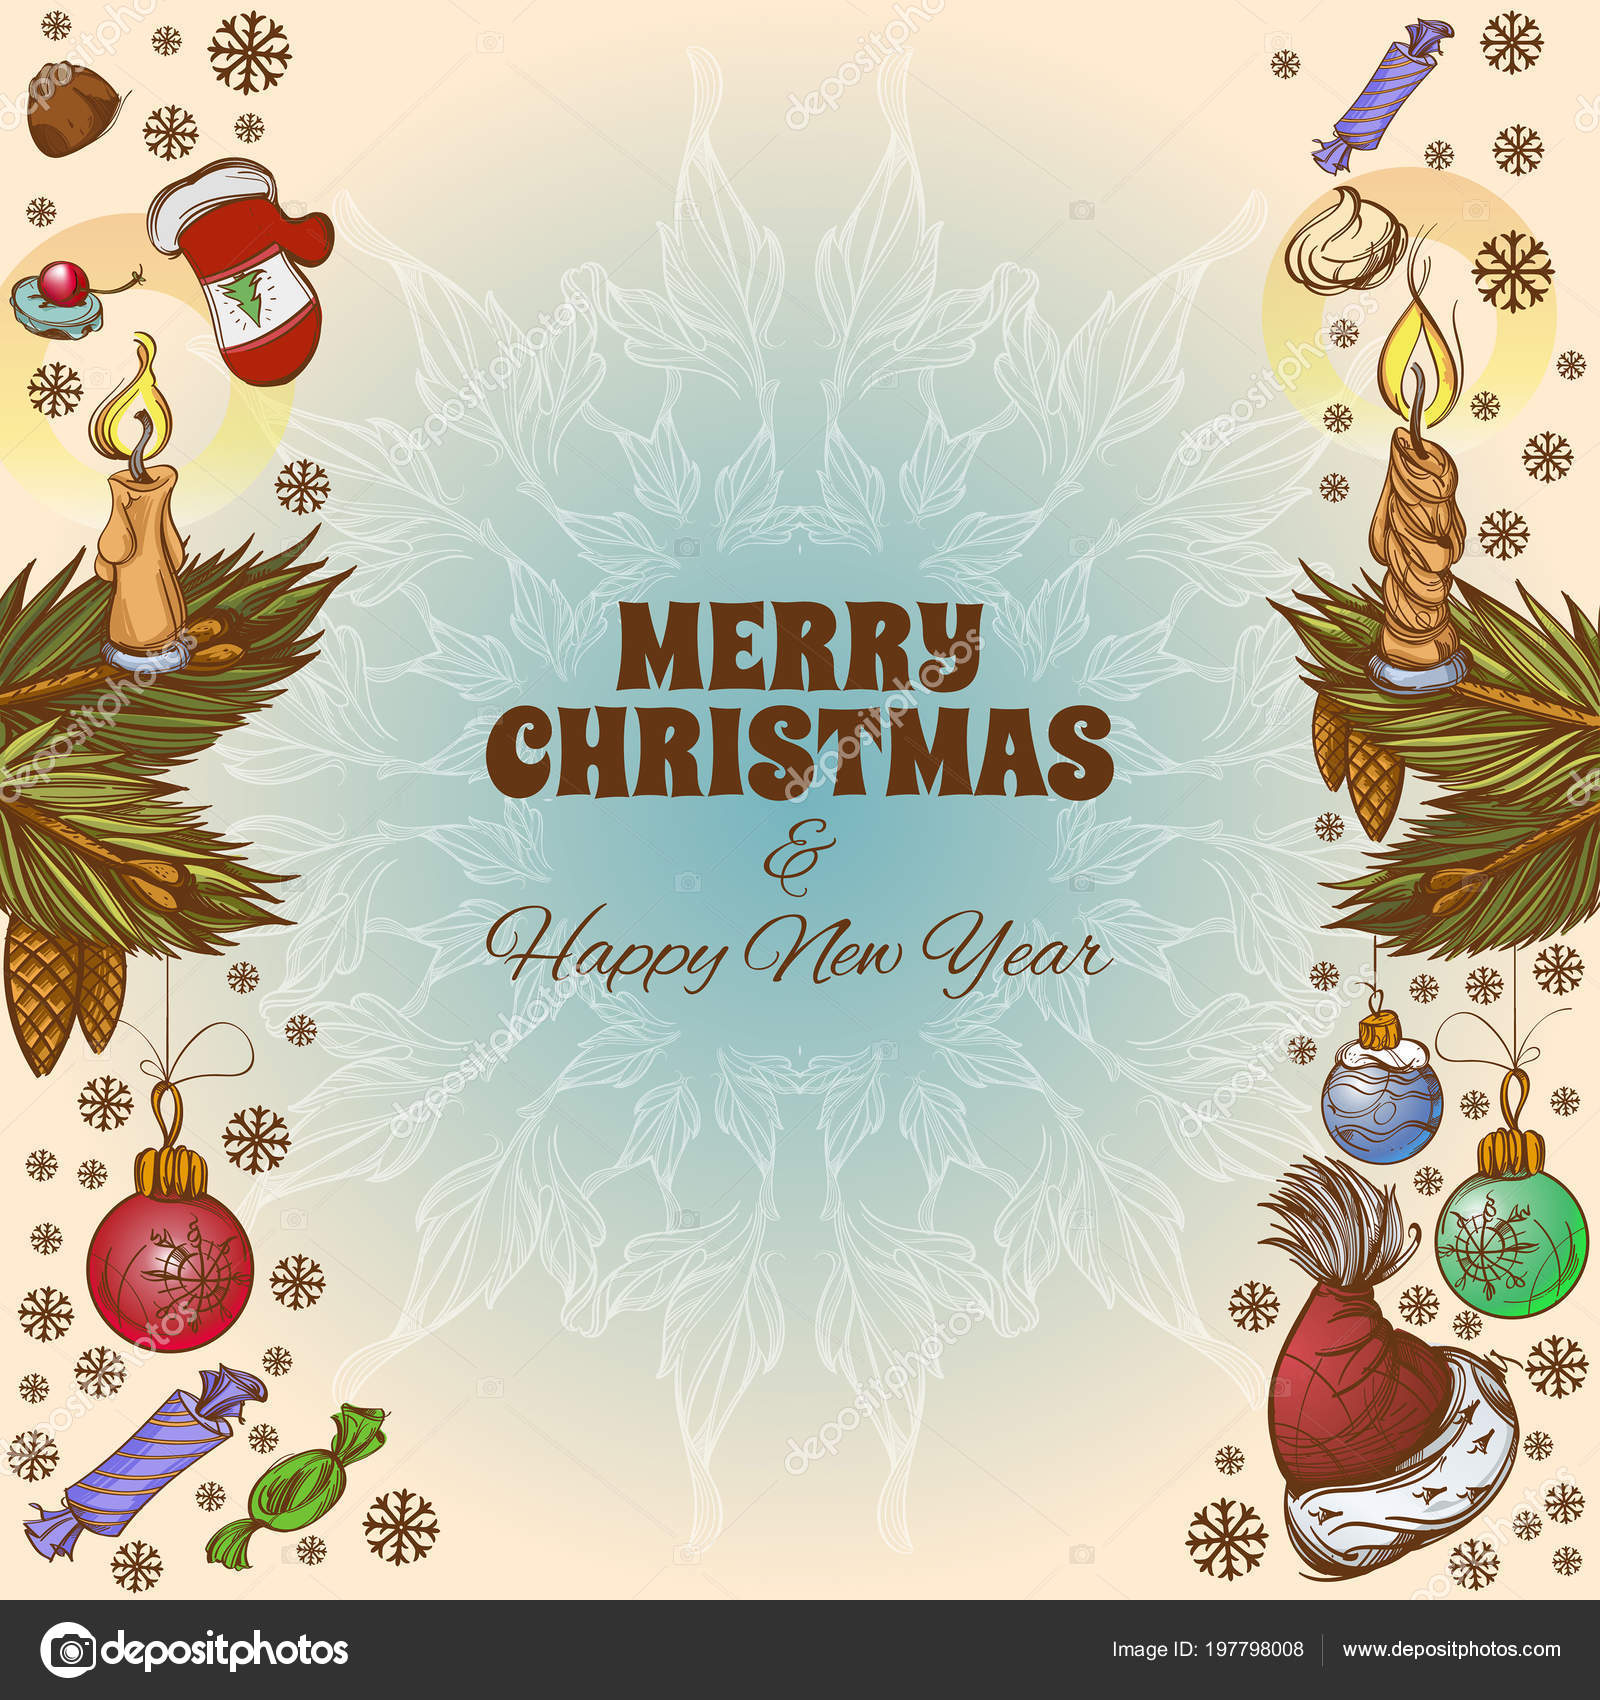 Merry Christmas Happy New Year Vector Illustration Greeting Cards ...